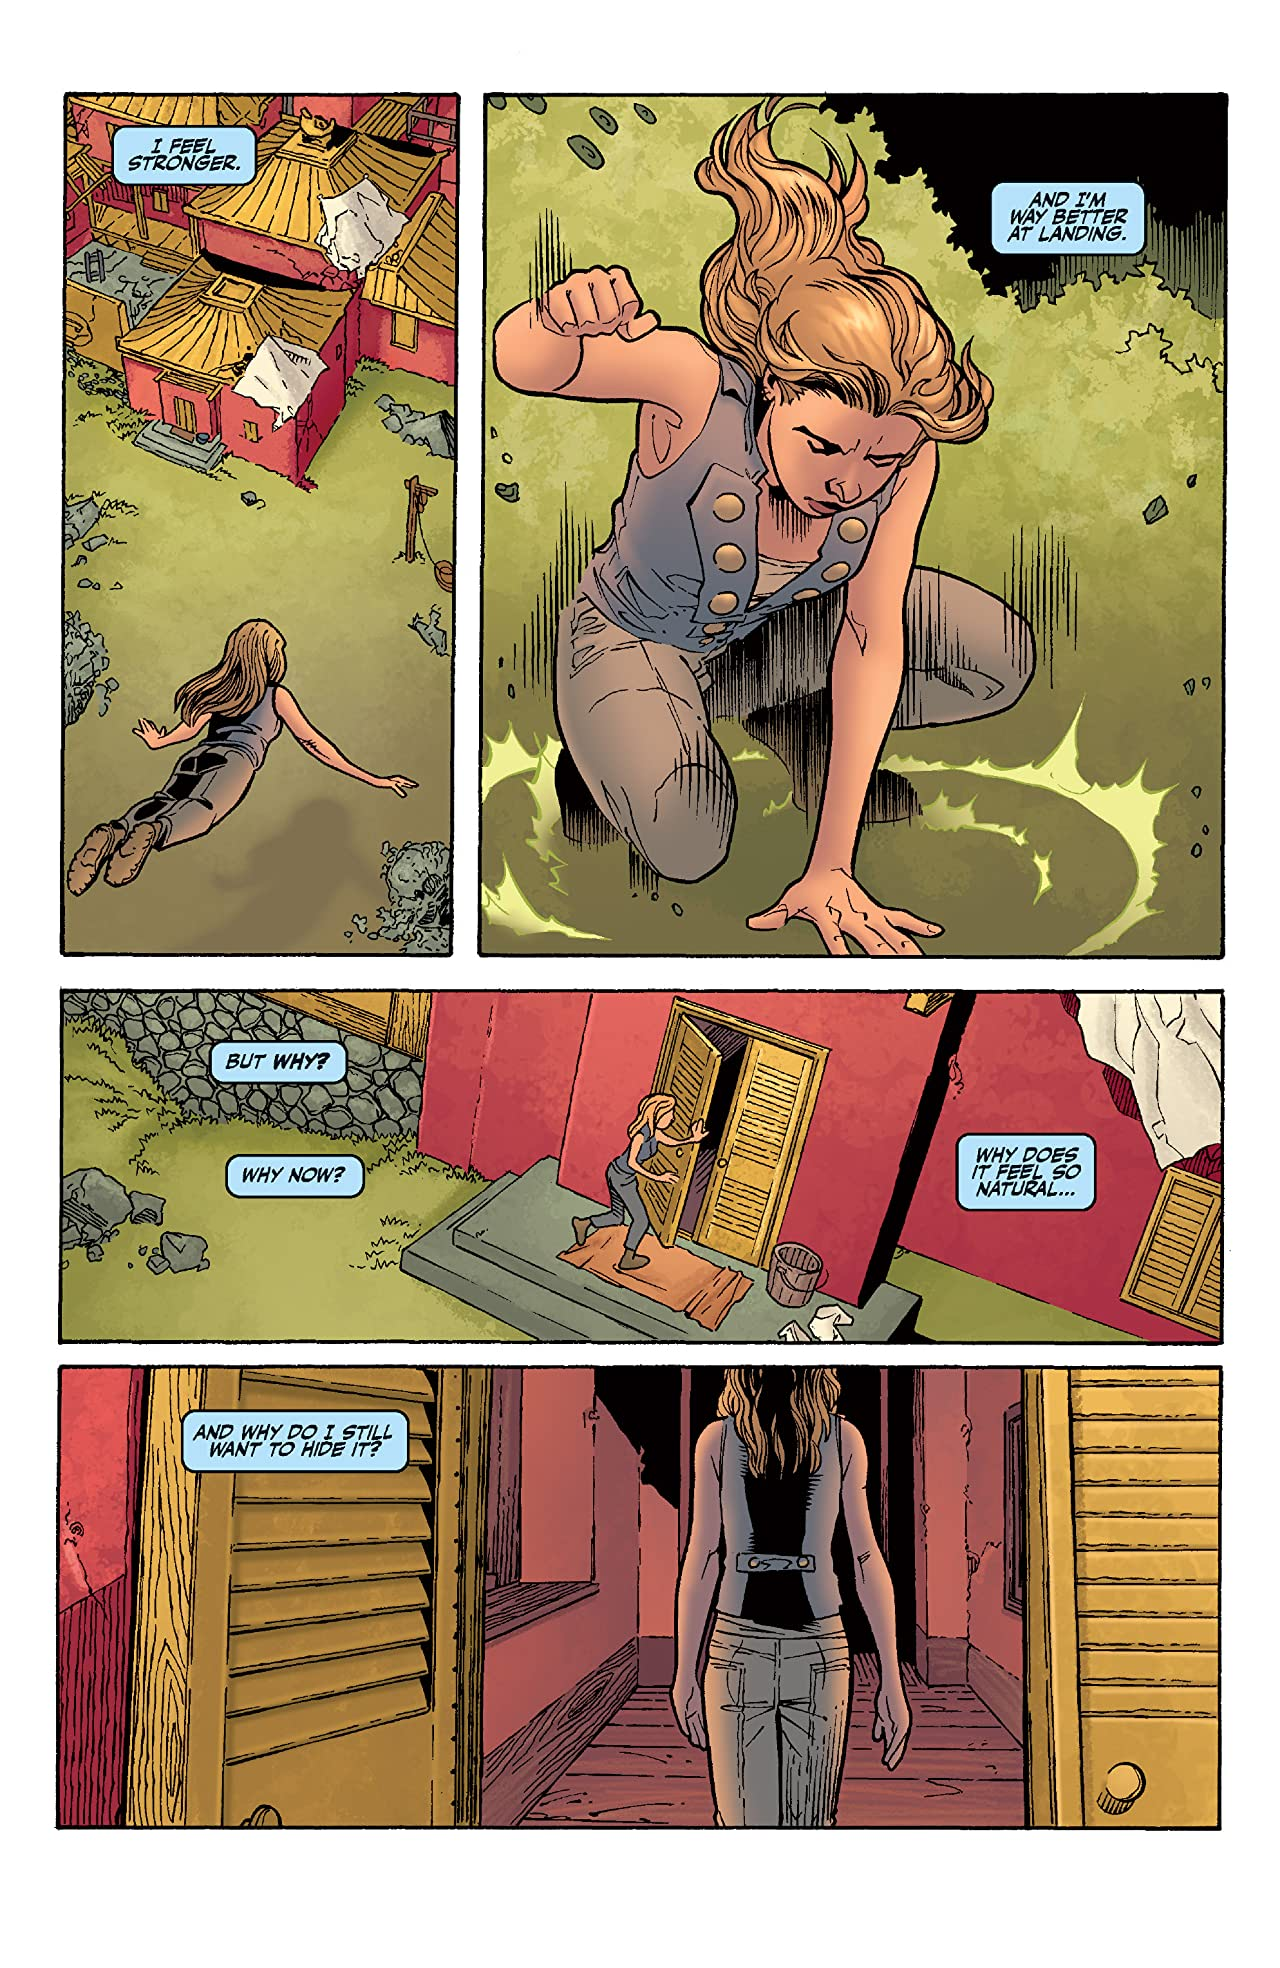 Buffy the Vampire Slayer: Season 8 #31